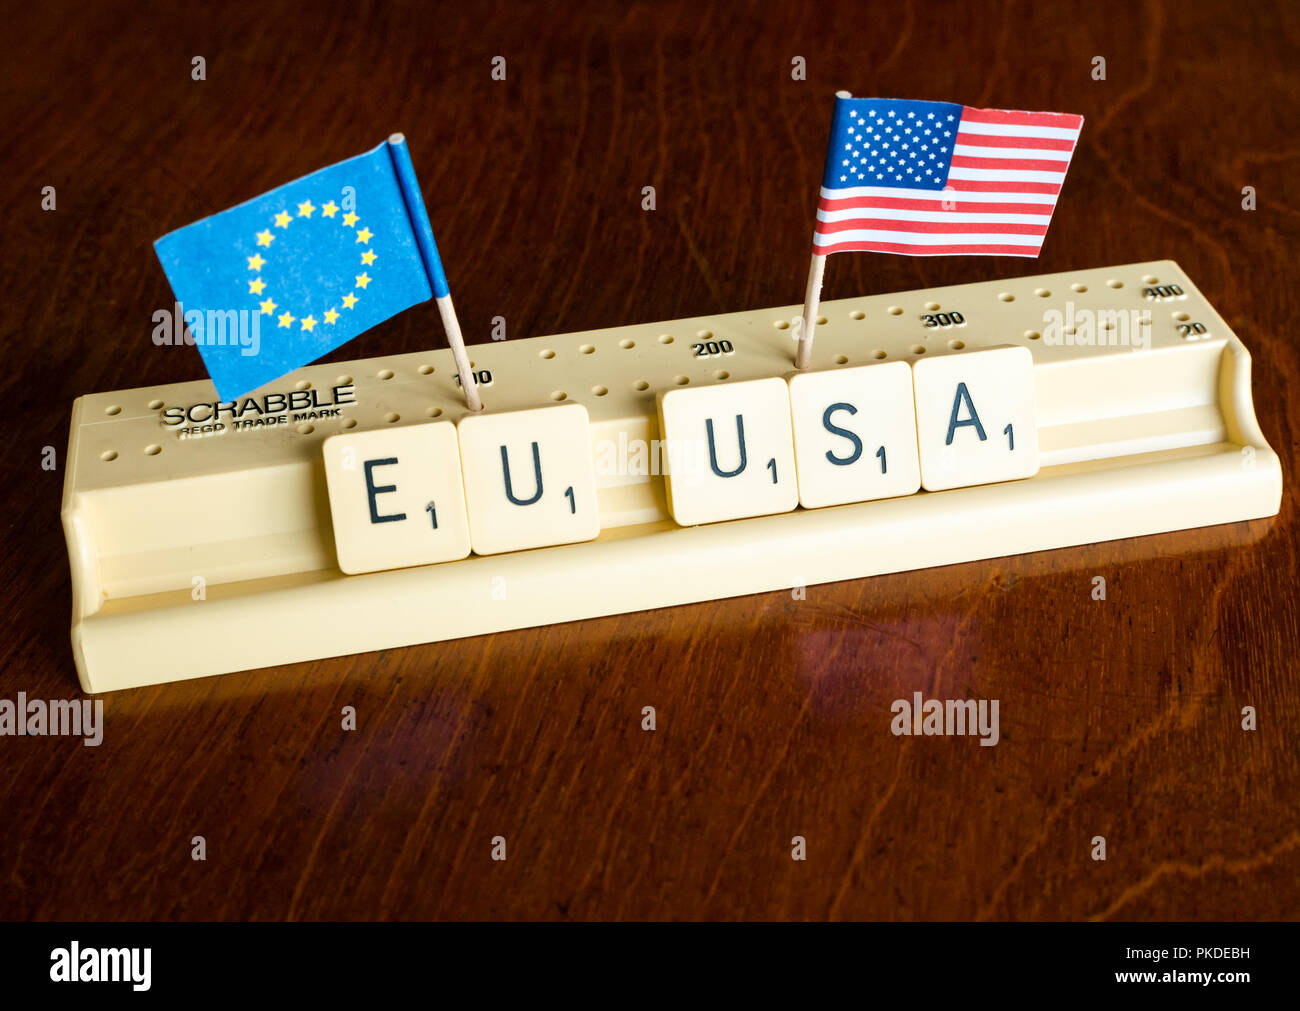 Scrabble letters spelling EU and USA with American and European Union flags on mahogany background to illustrate nation, trade and negotiation concept - Stock Image